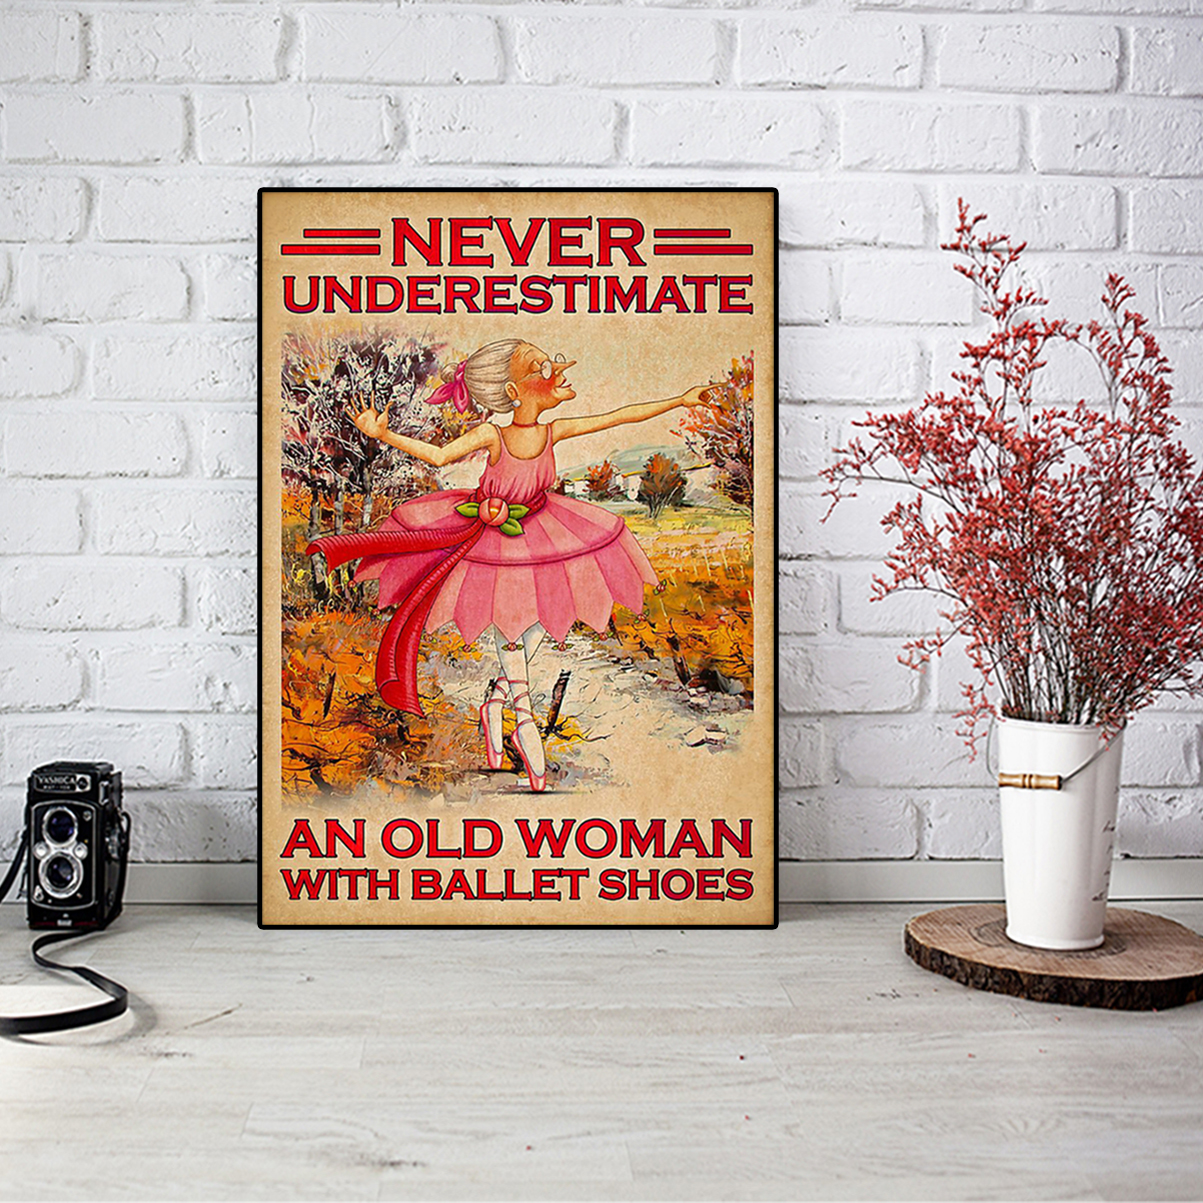 Never underestimate an old woman with ballet shoes poster A1